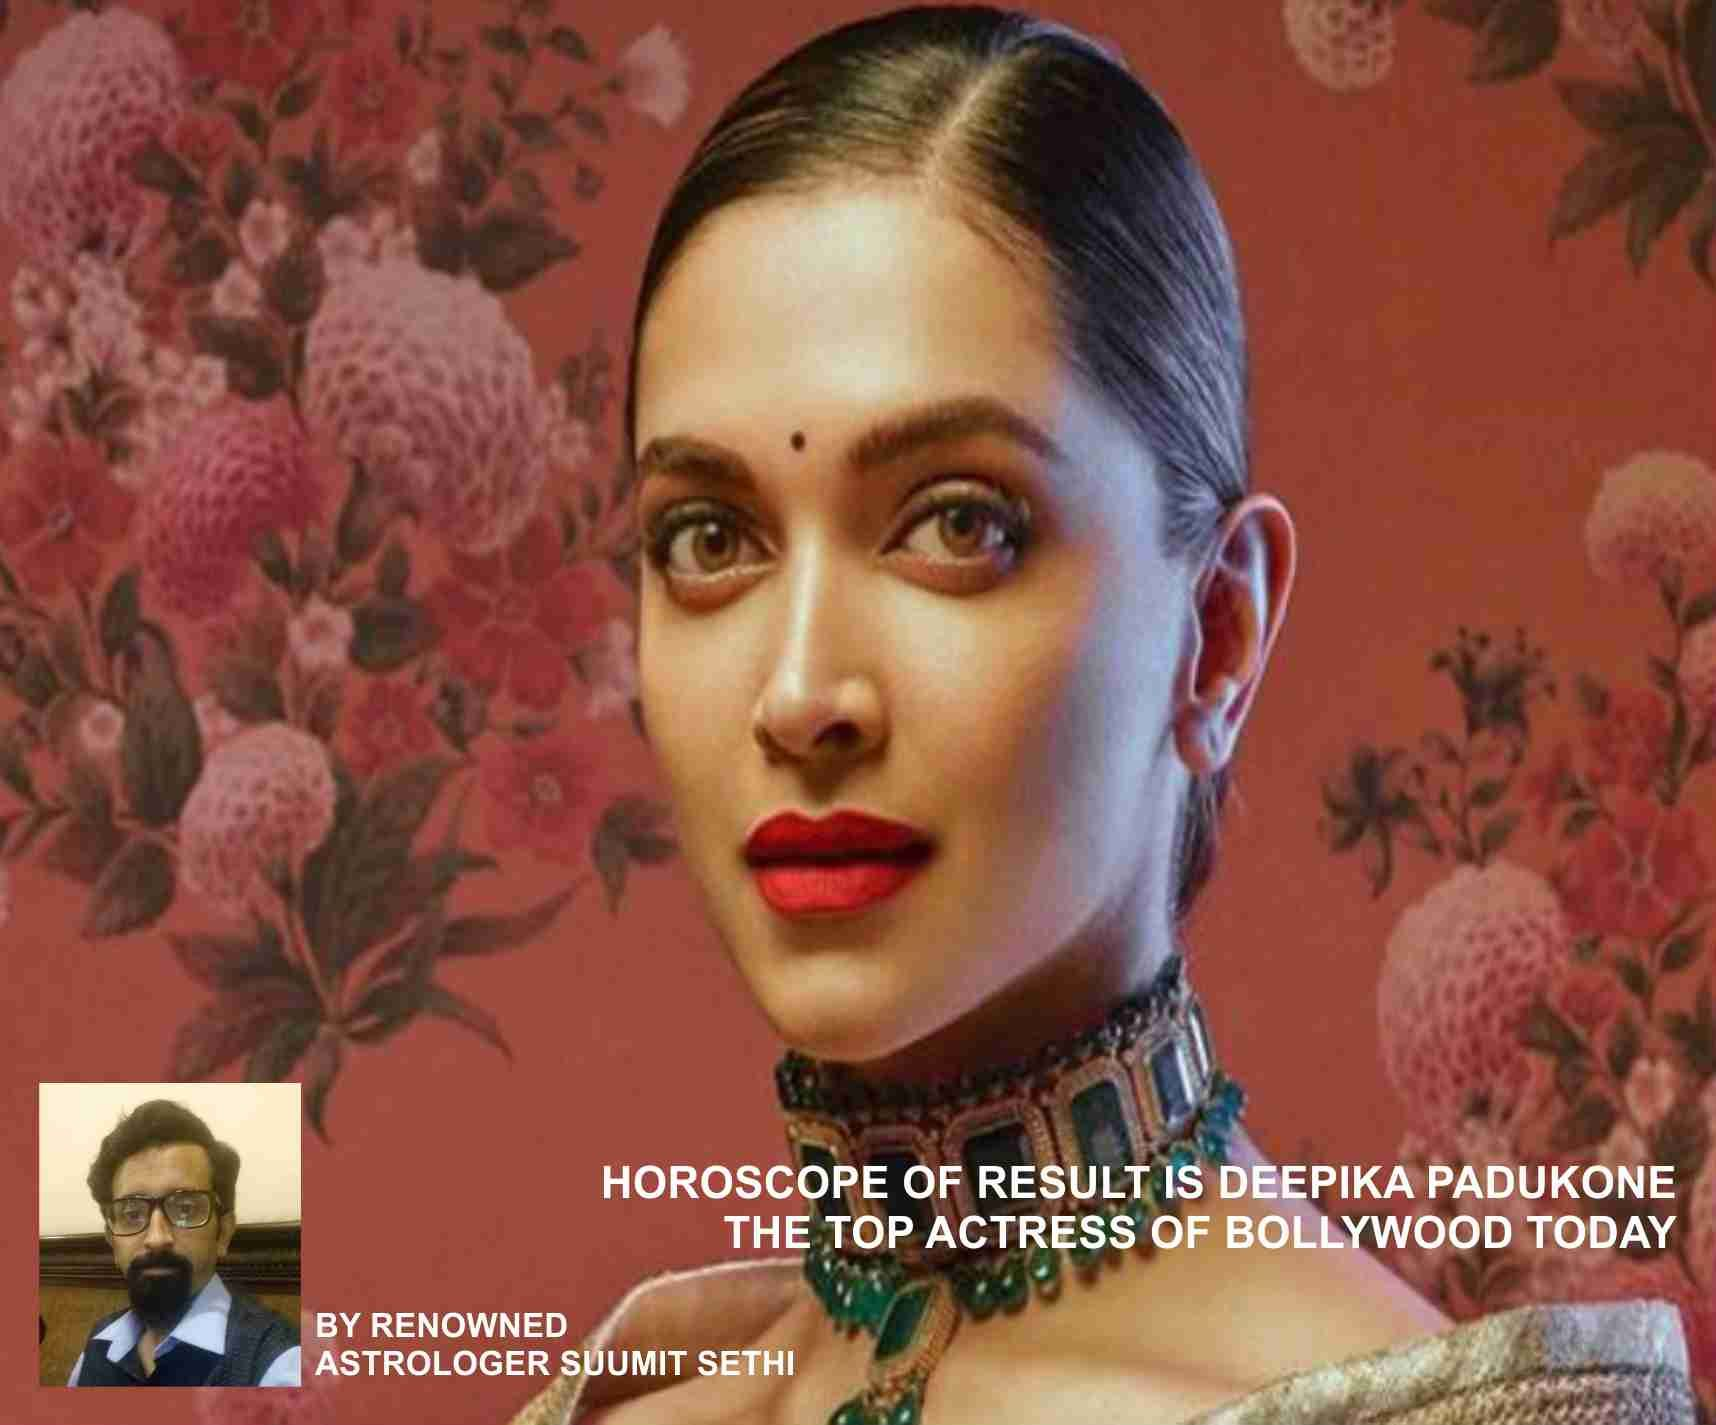 What S The Result When We Mix Beauty Talent And Money Into One Result Is Deepikapadukone The Top Actress Of B Beauty Face Women Shades Of Red Indian Women